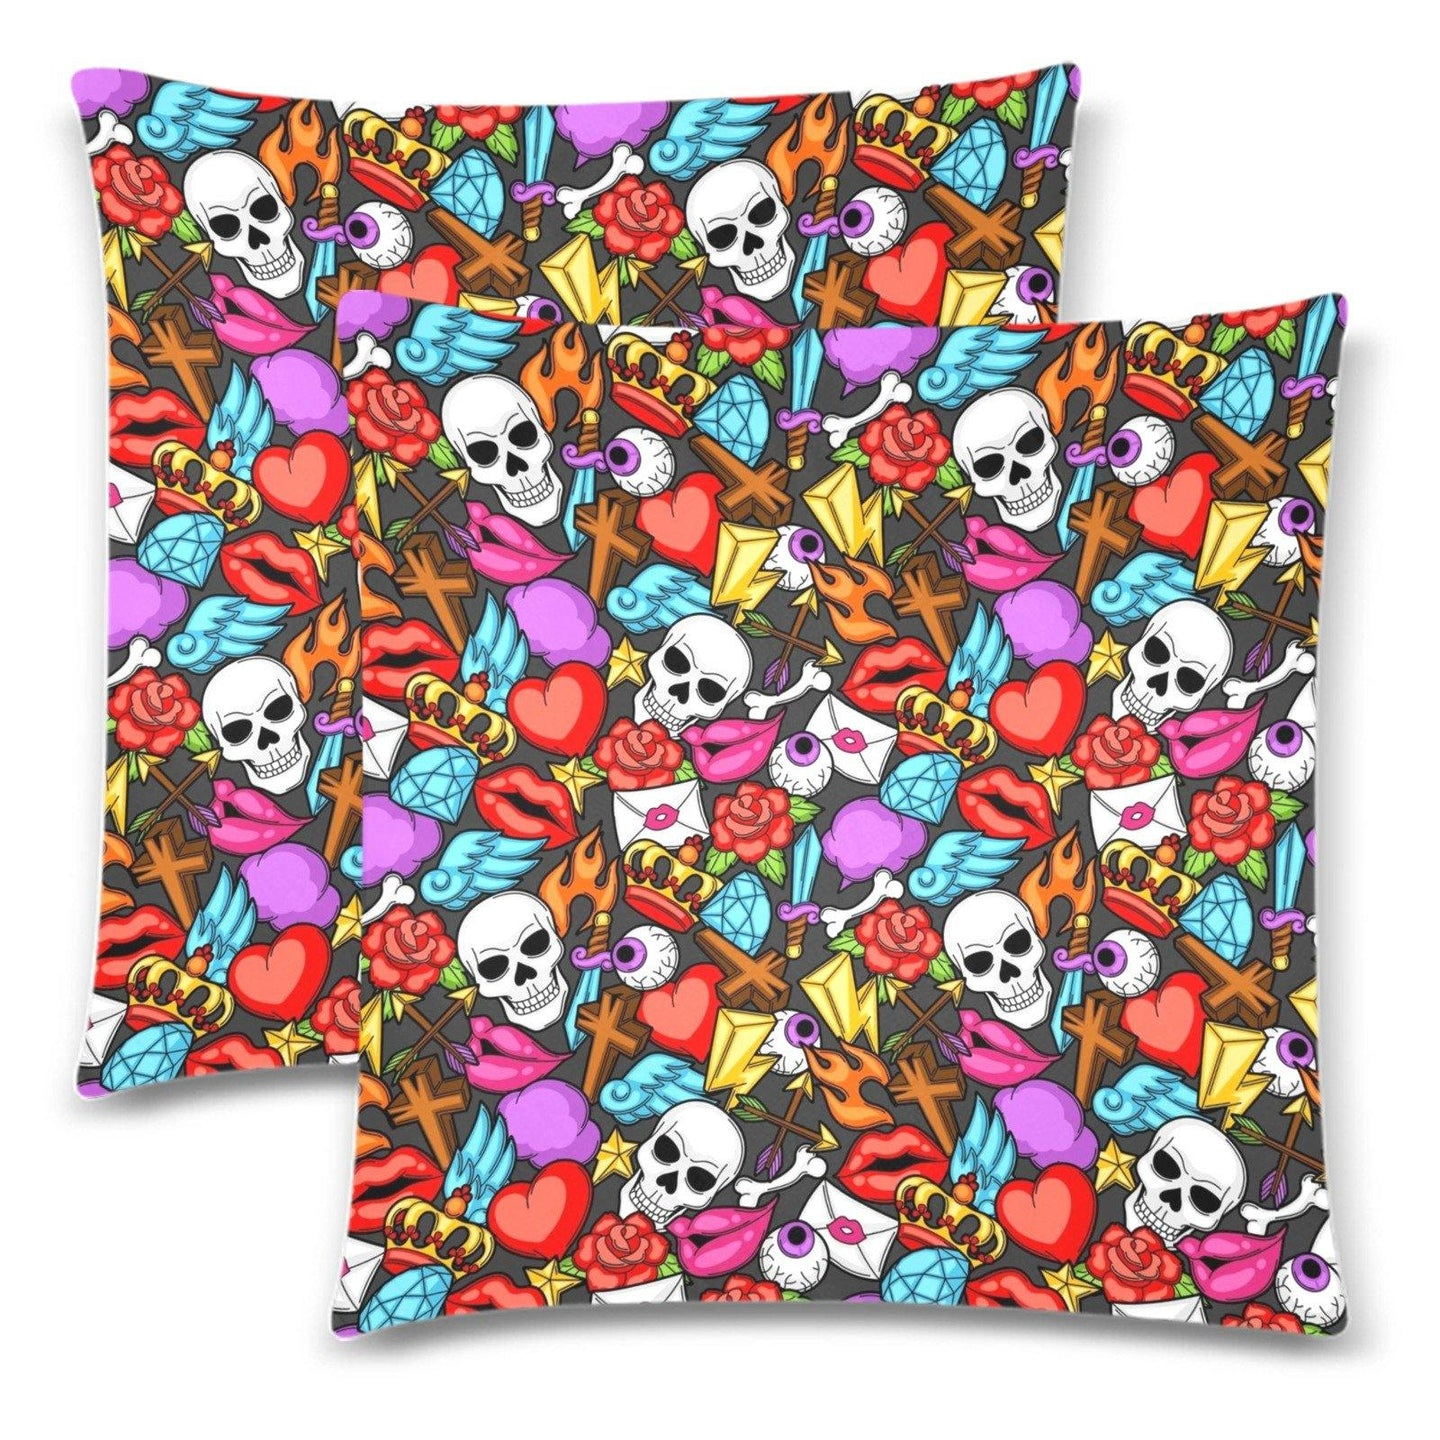 MEMENTOS Throw Pillow Cover 18